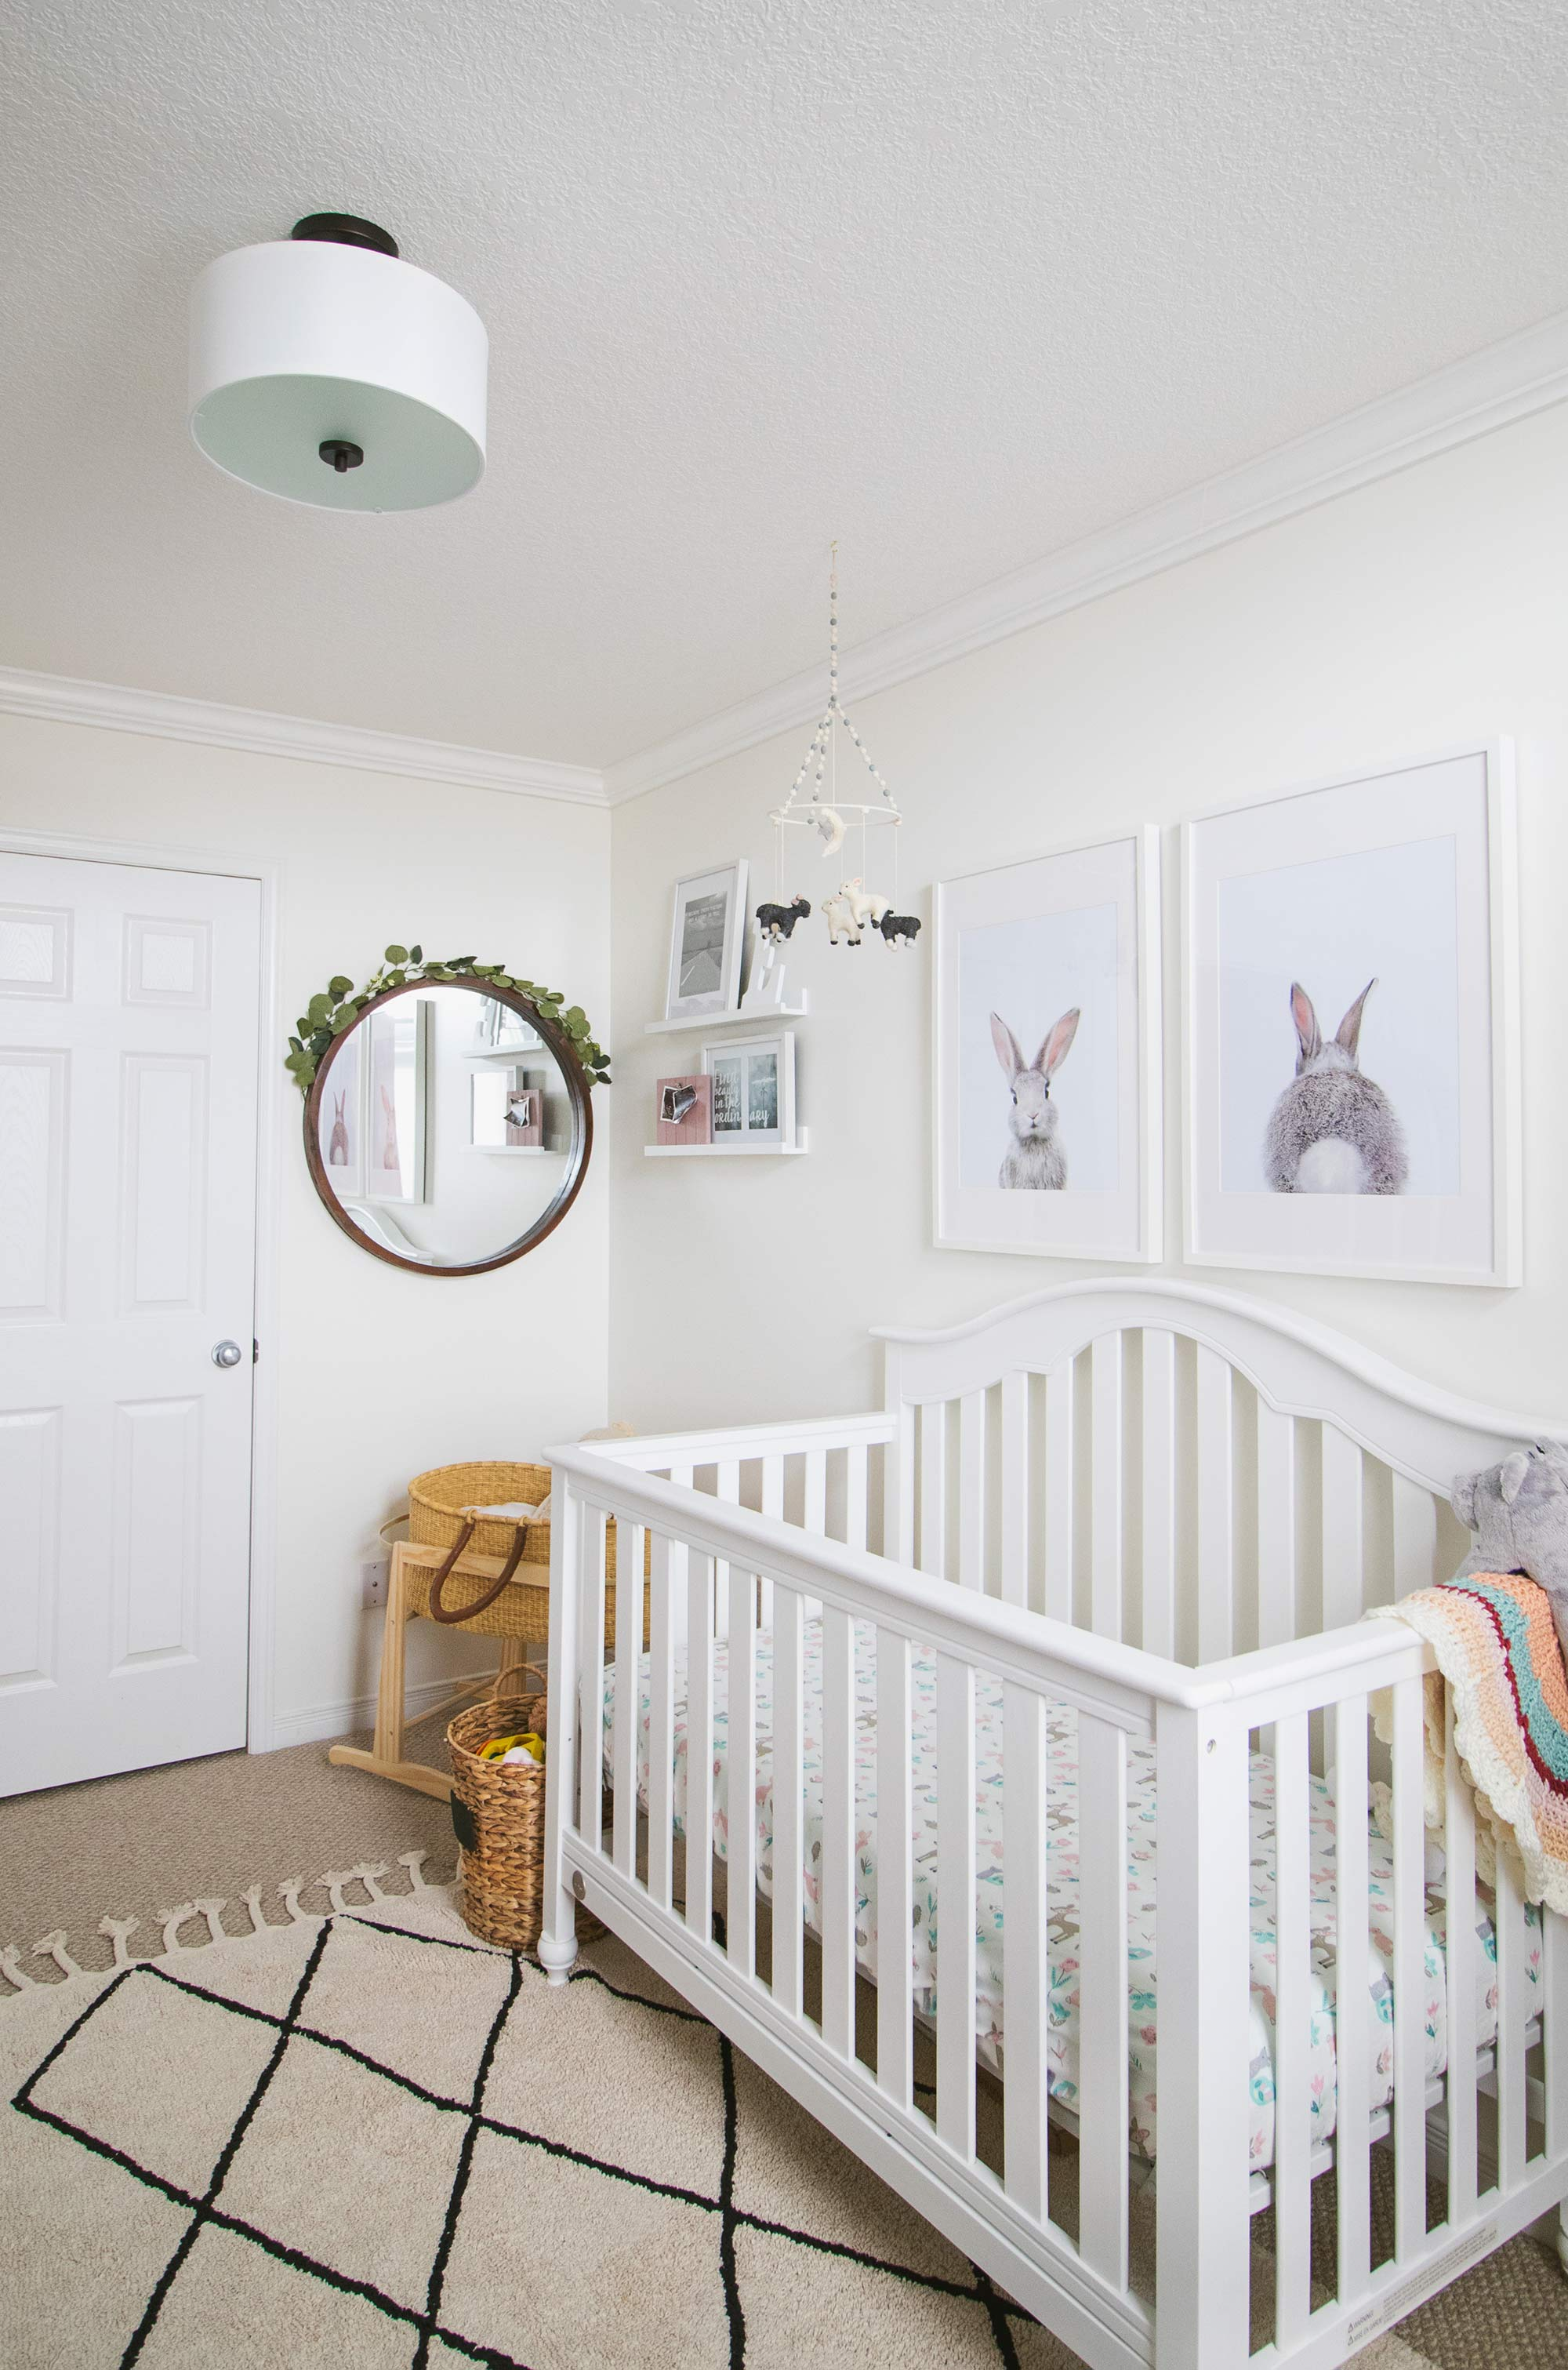 Simple and white decor for a baby girl nursery